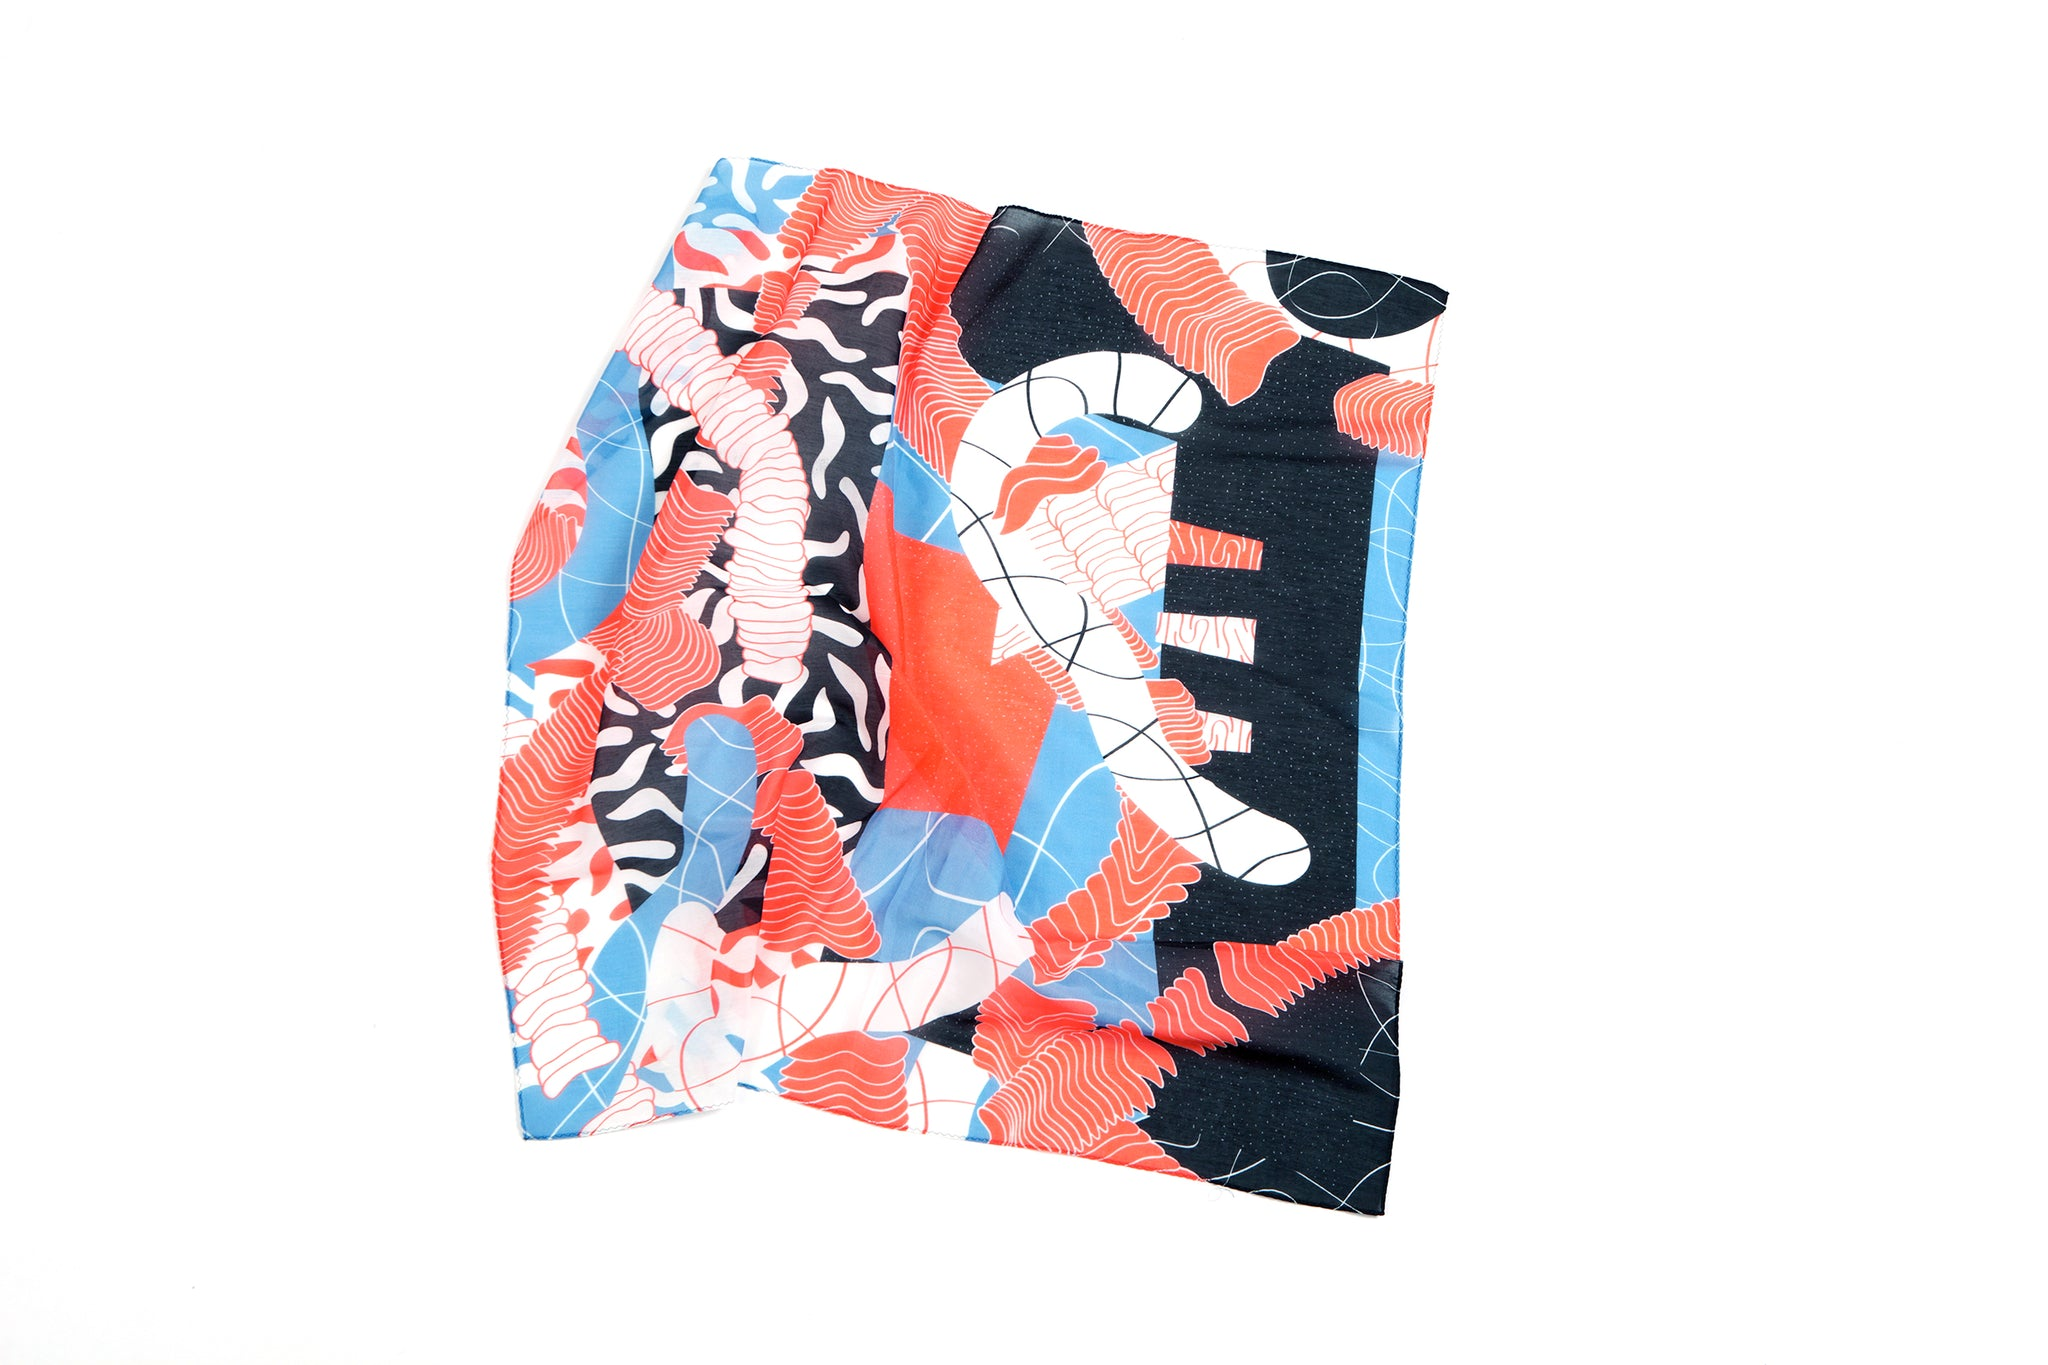 Saturation Medium Scarf, 65x65 cm, Cotton-Silk Blends